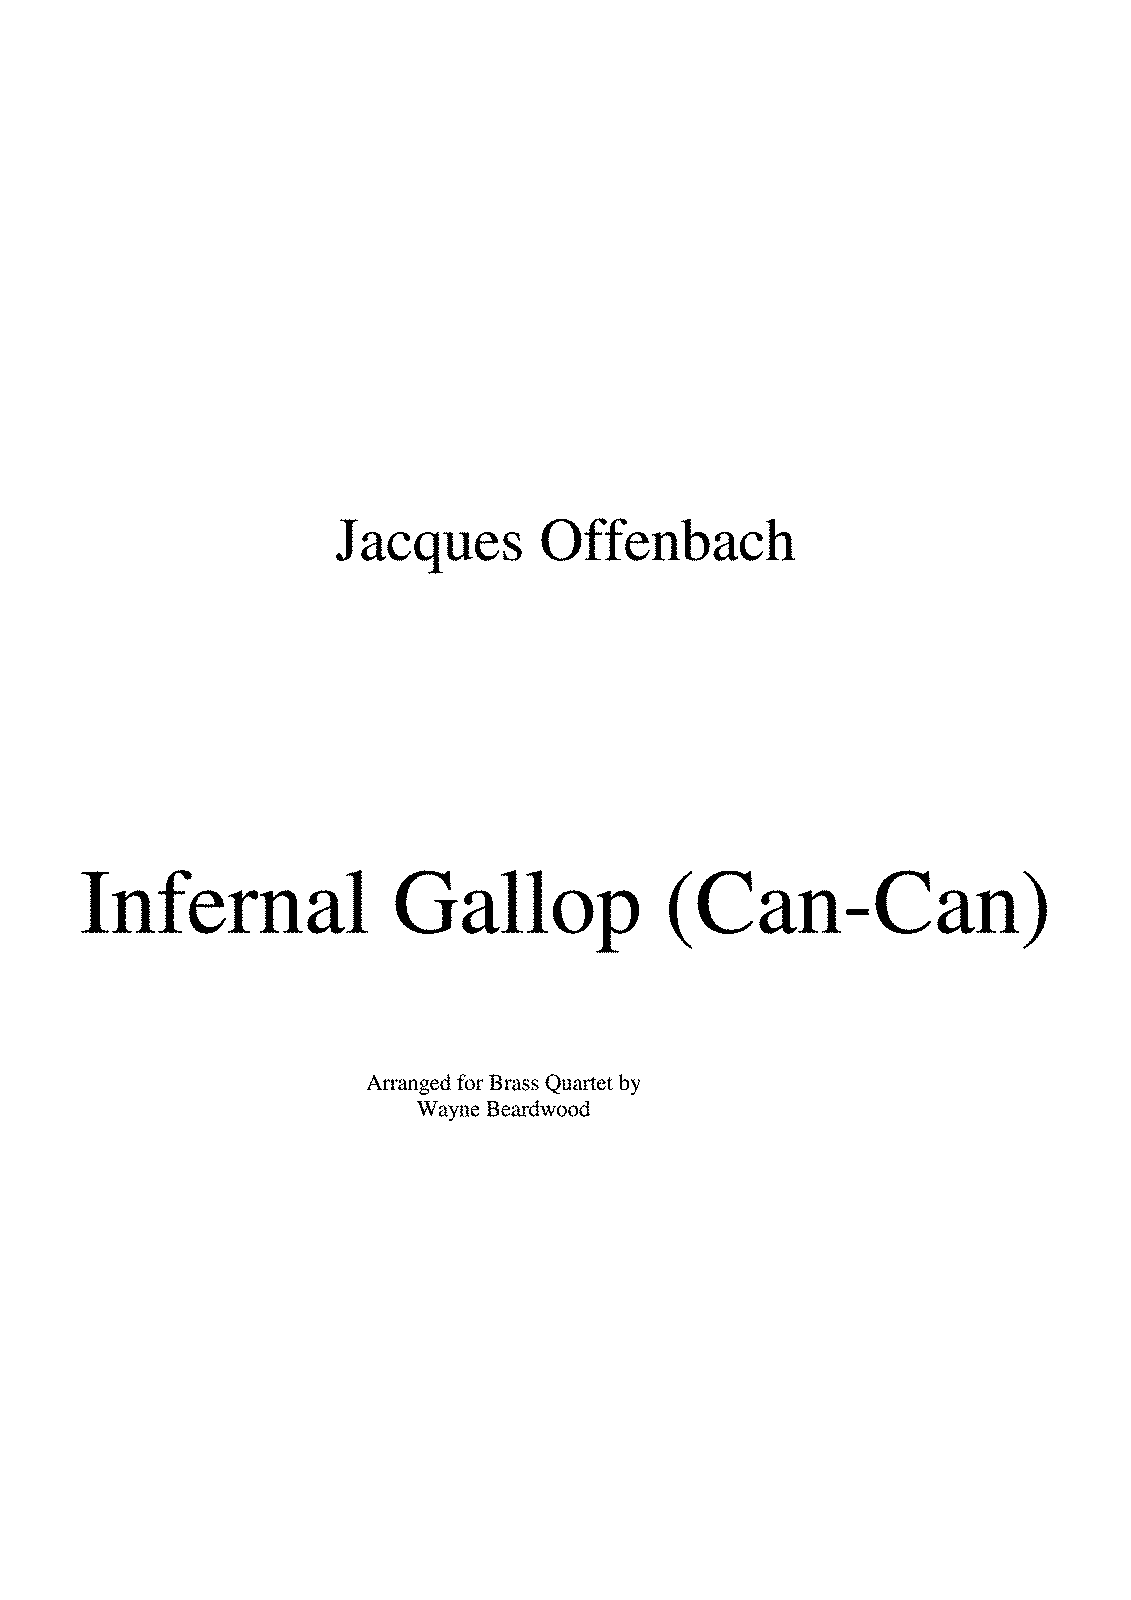 PMLP24816-Infernal Gallop (Can-Can) Score.pdf